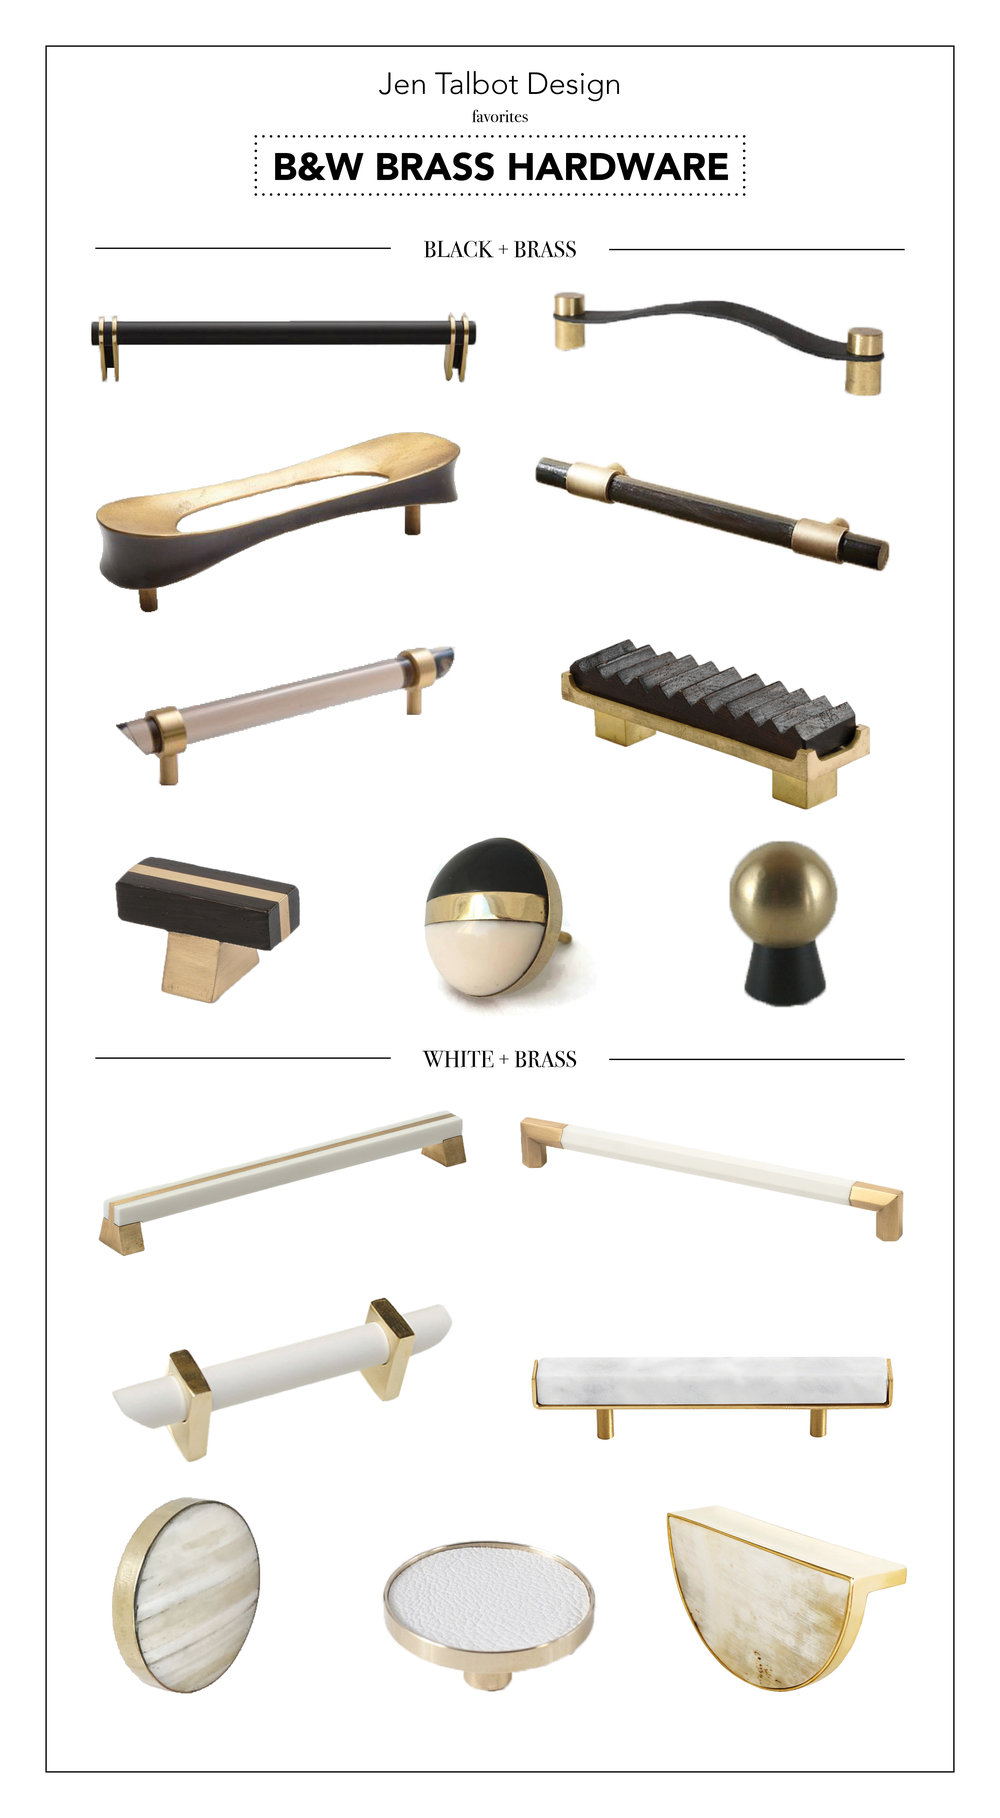 B&W Hardware Favorites.jpg